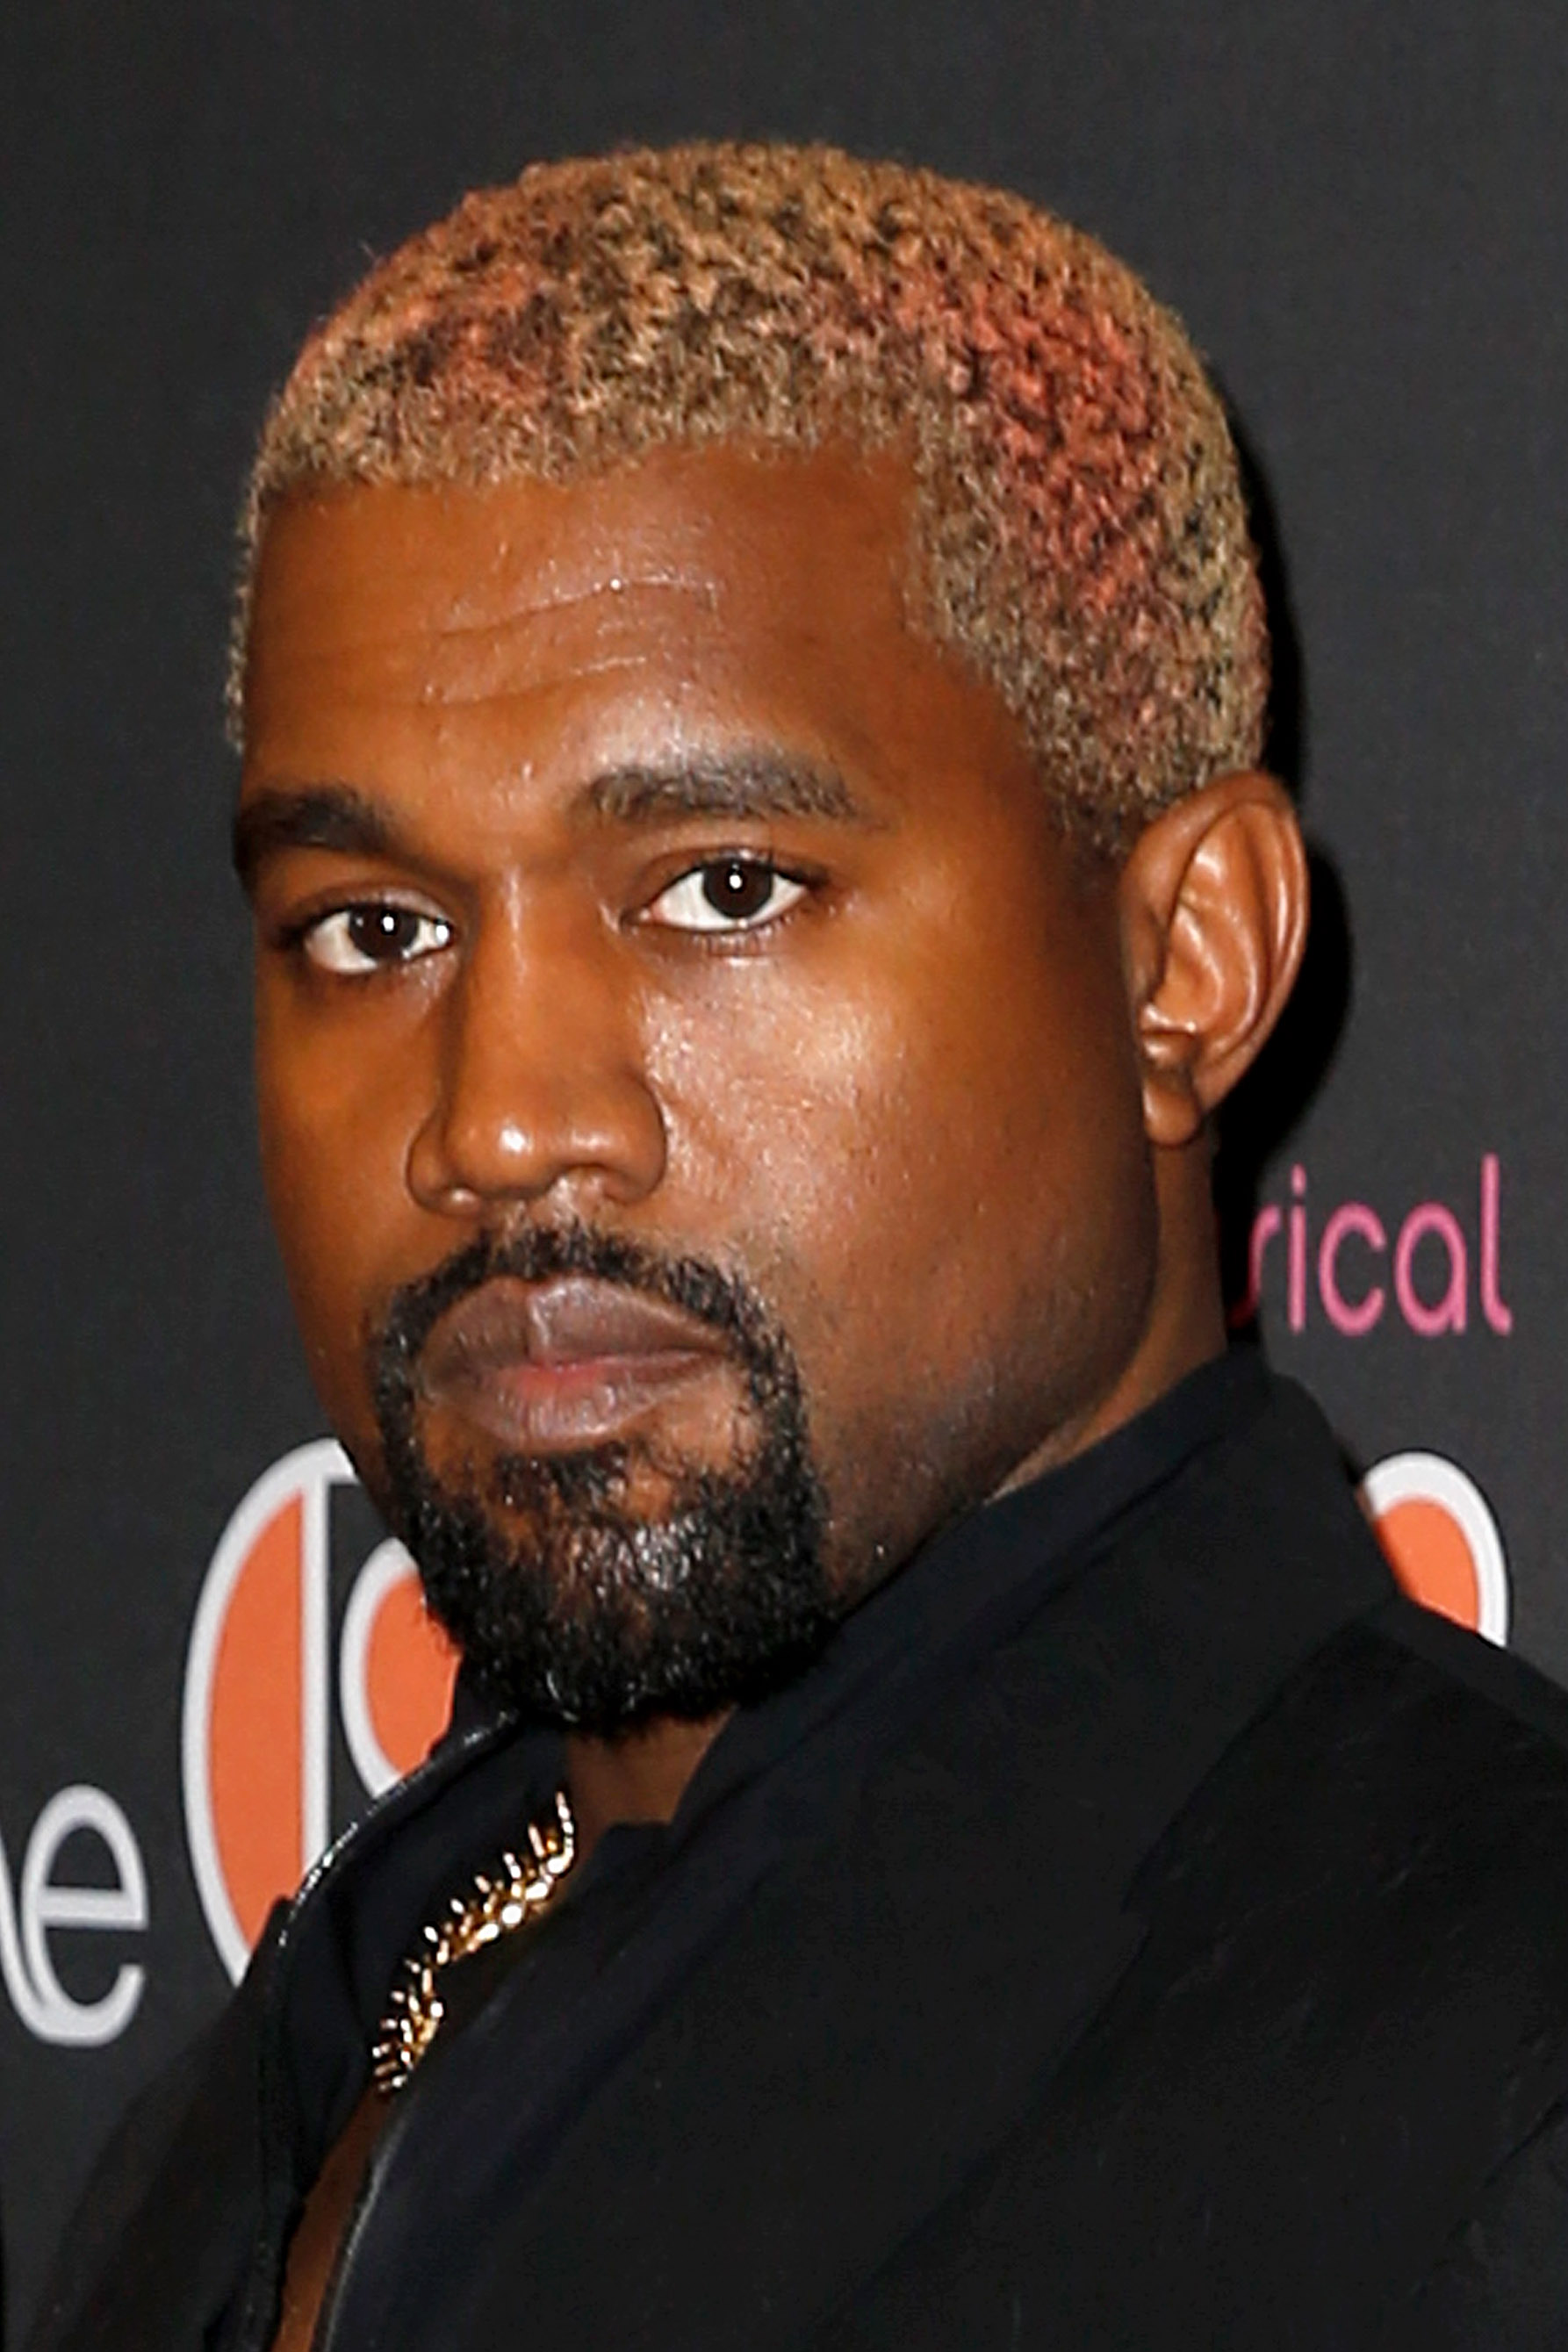 Kanye West has been conducting the weekly service since the start of the year (Source: Getty Images)